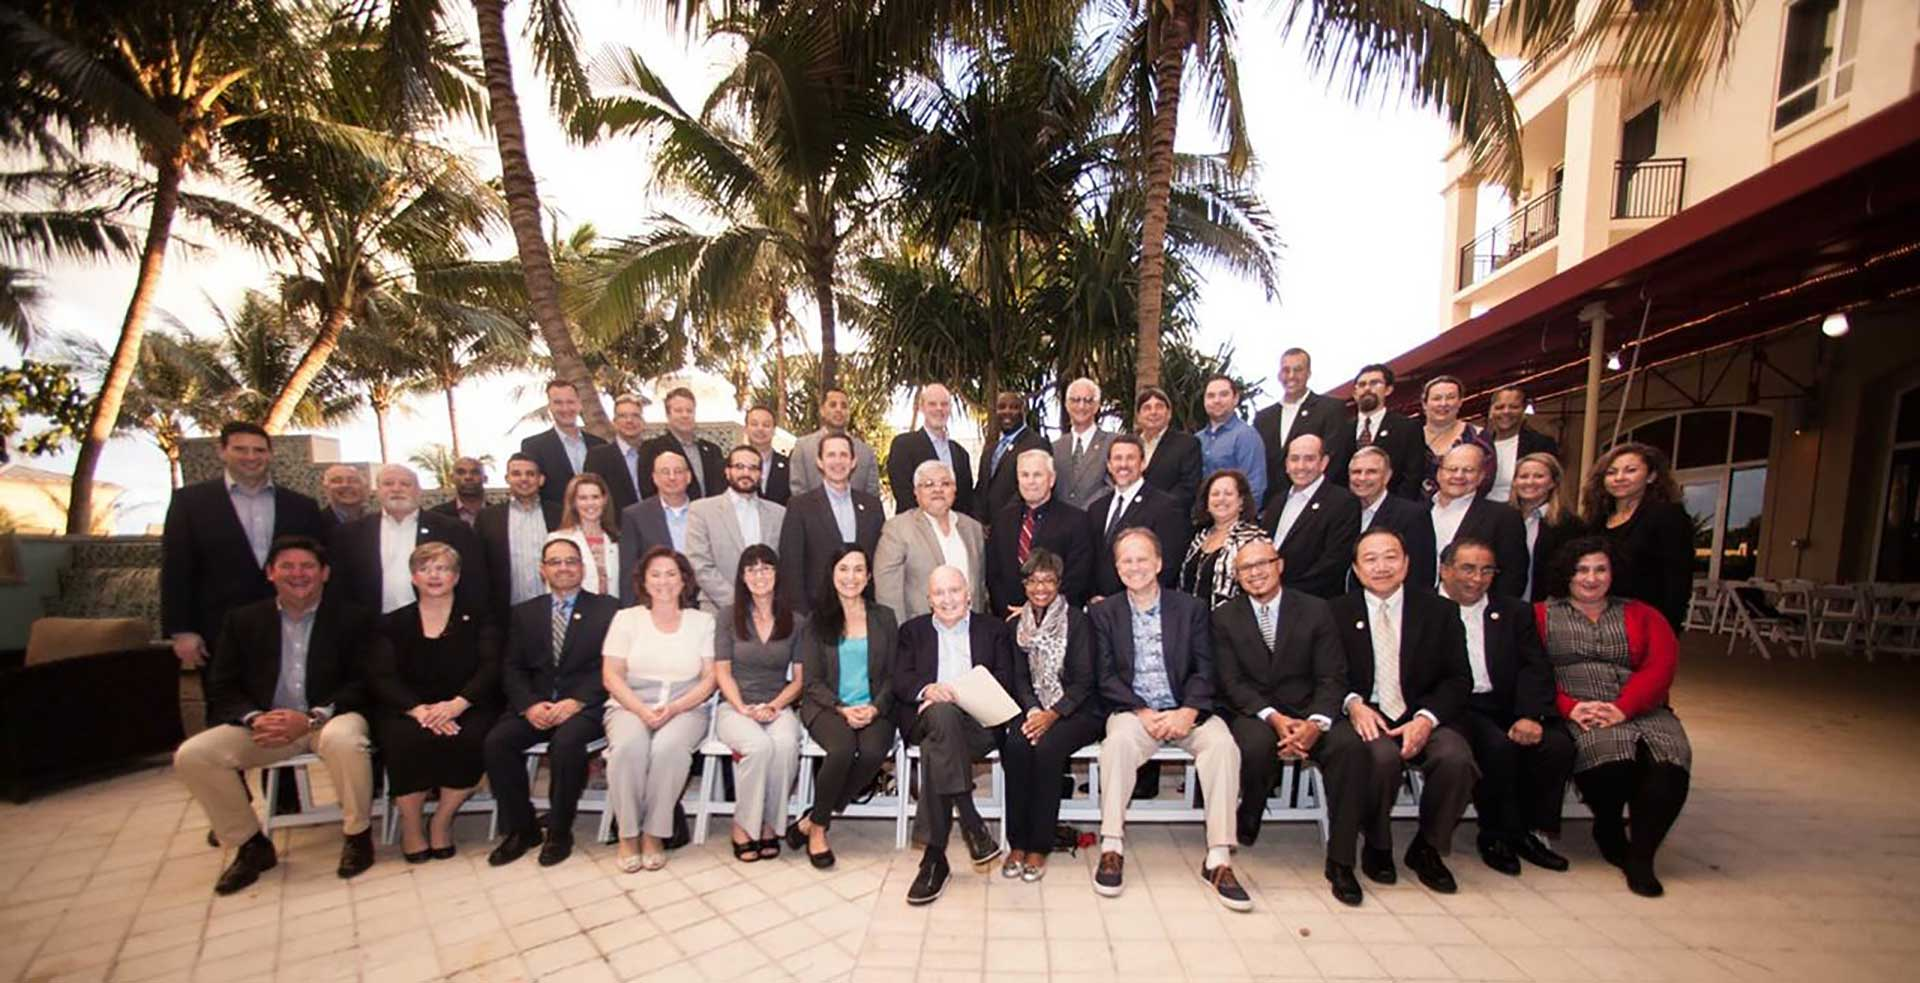 JWMI Faculty and Jack Welch in Florida